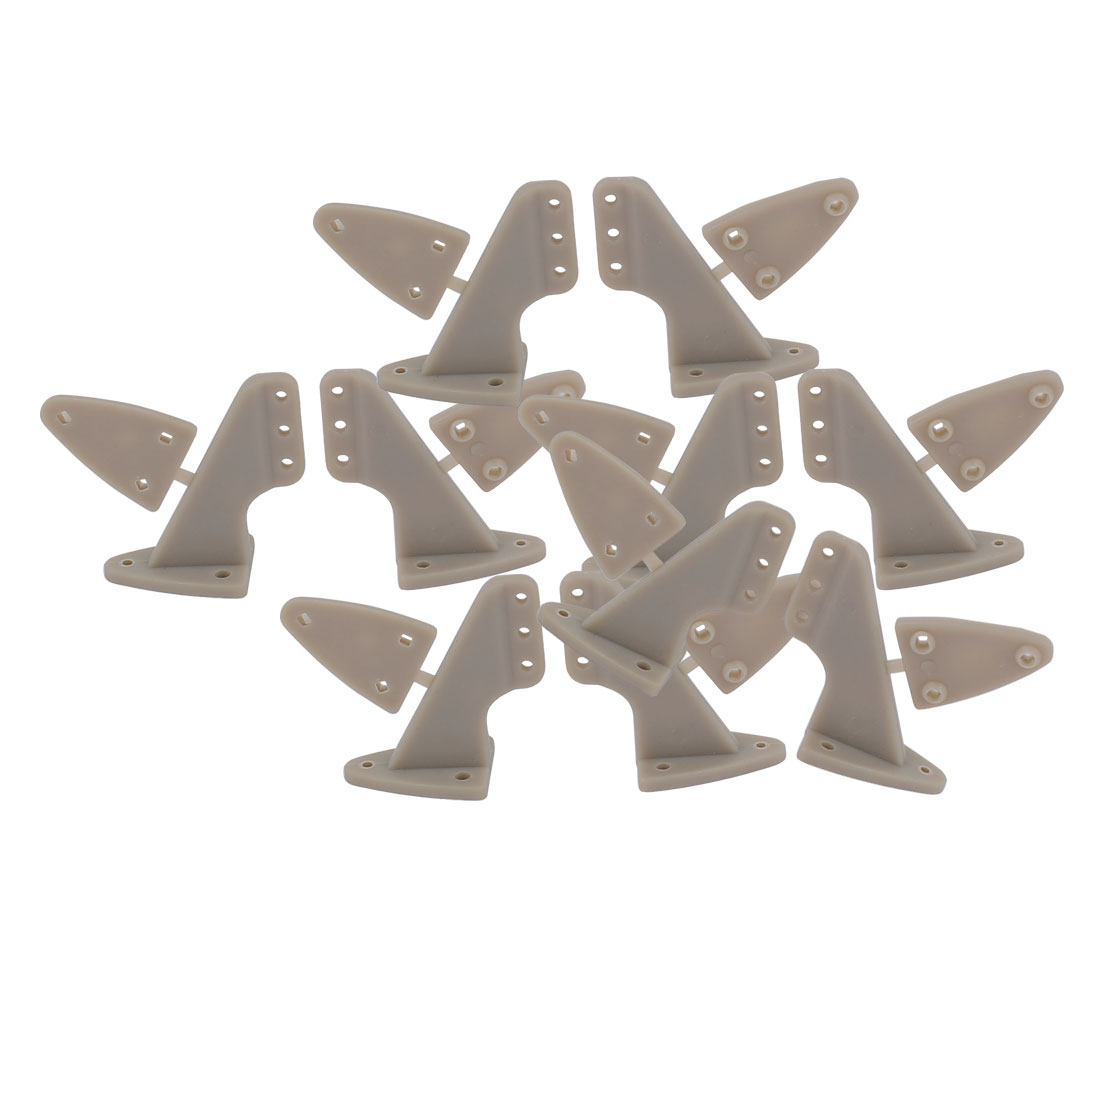 10pcs RC Remote Control Airplane Spare Parts 20.0x28.5mm Triangle Rudder Angle Grey